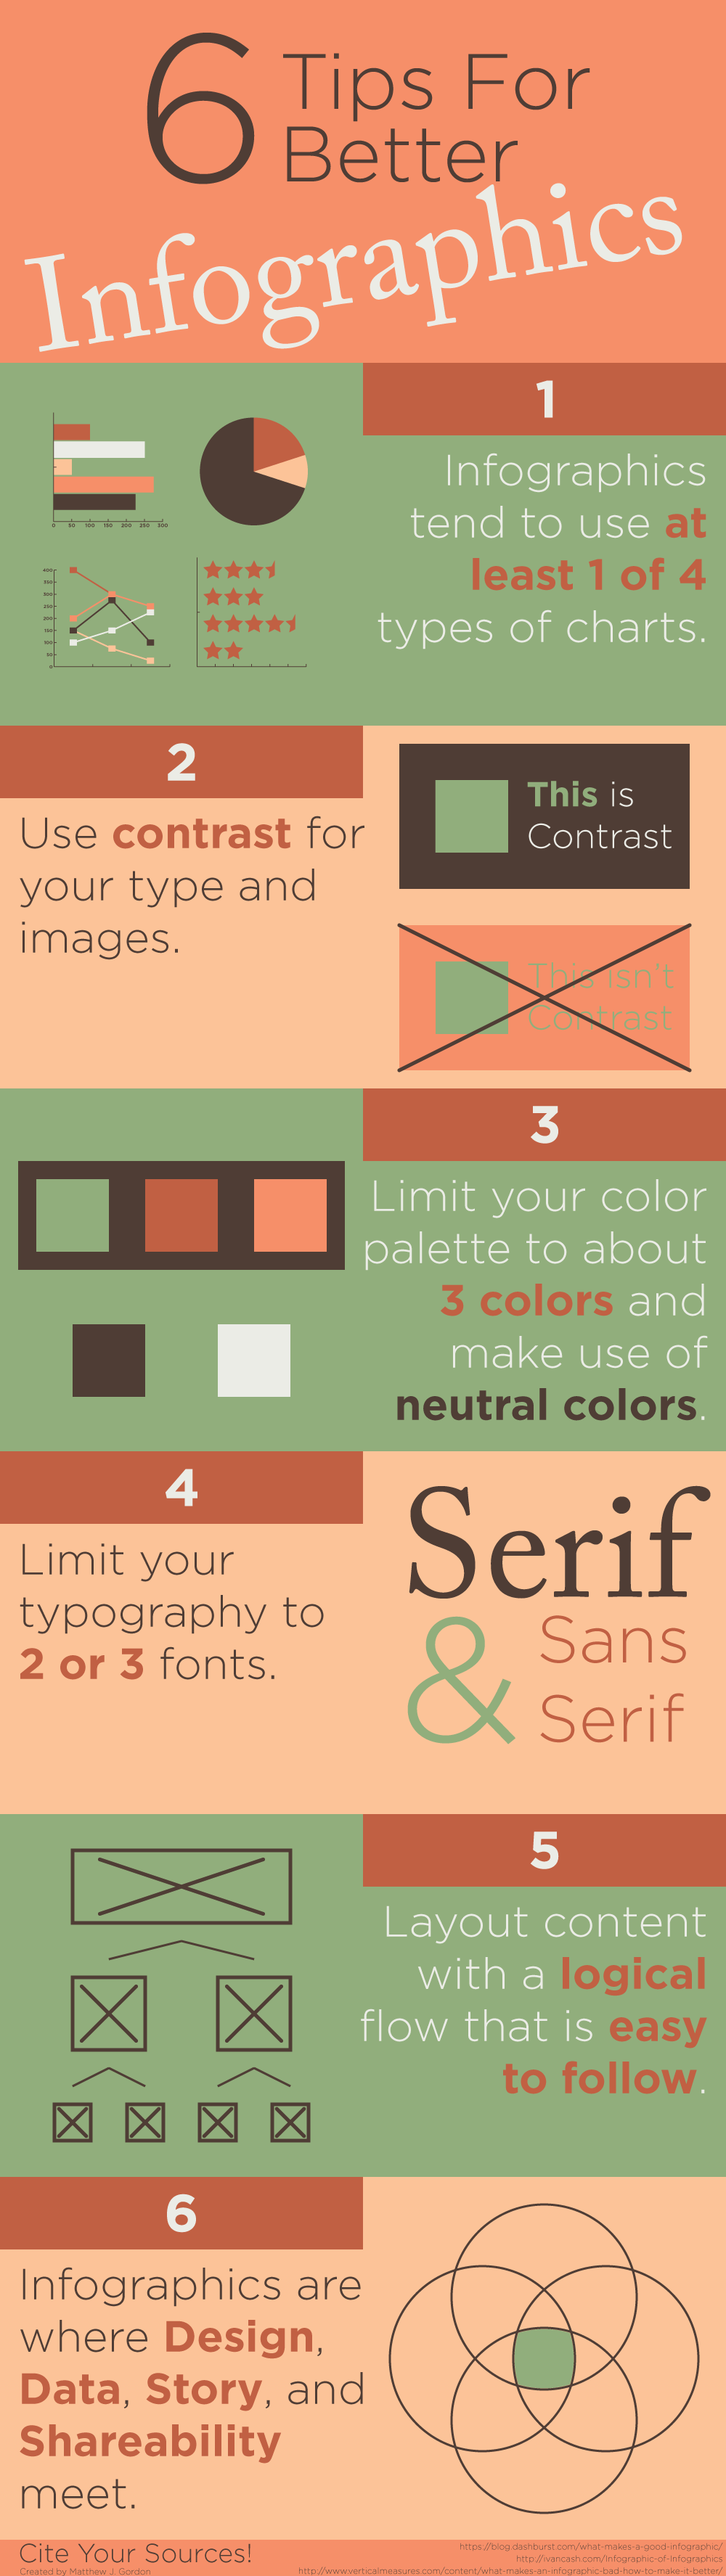 Infographic - Tips for a Better Infographic.png